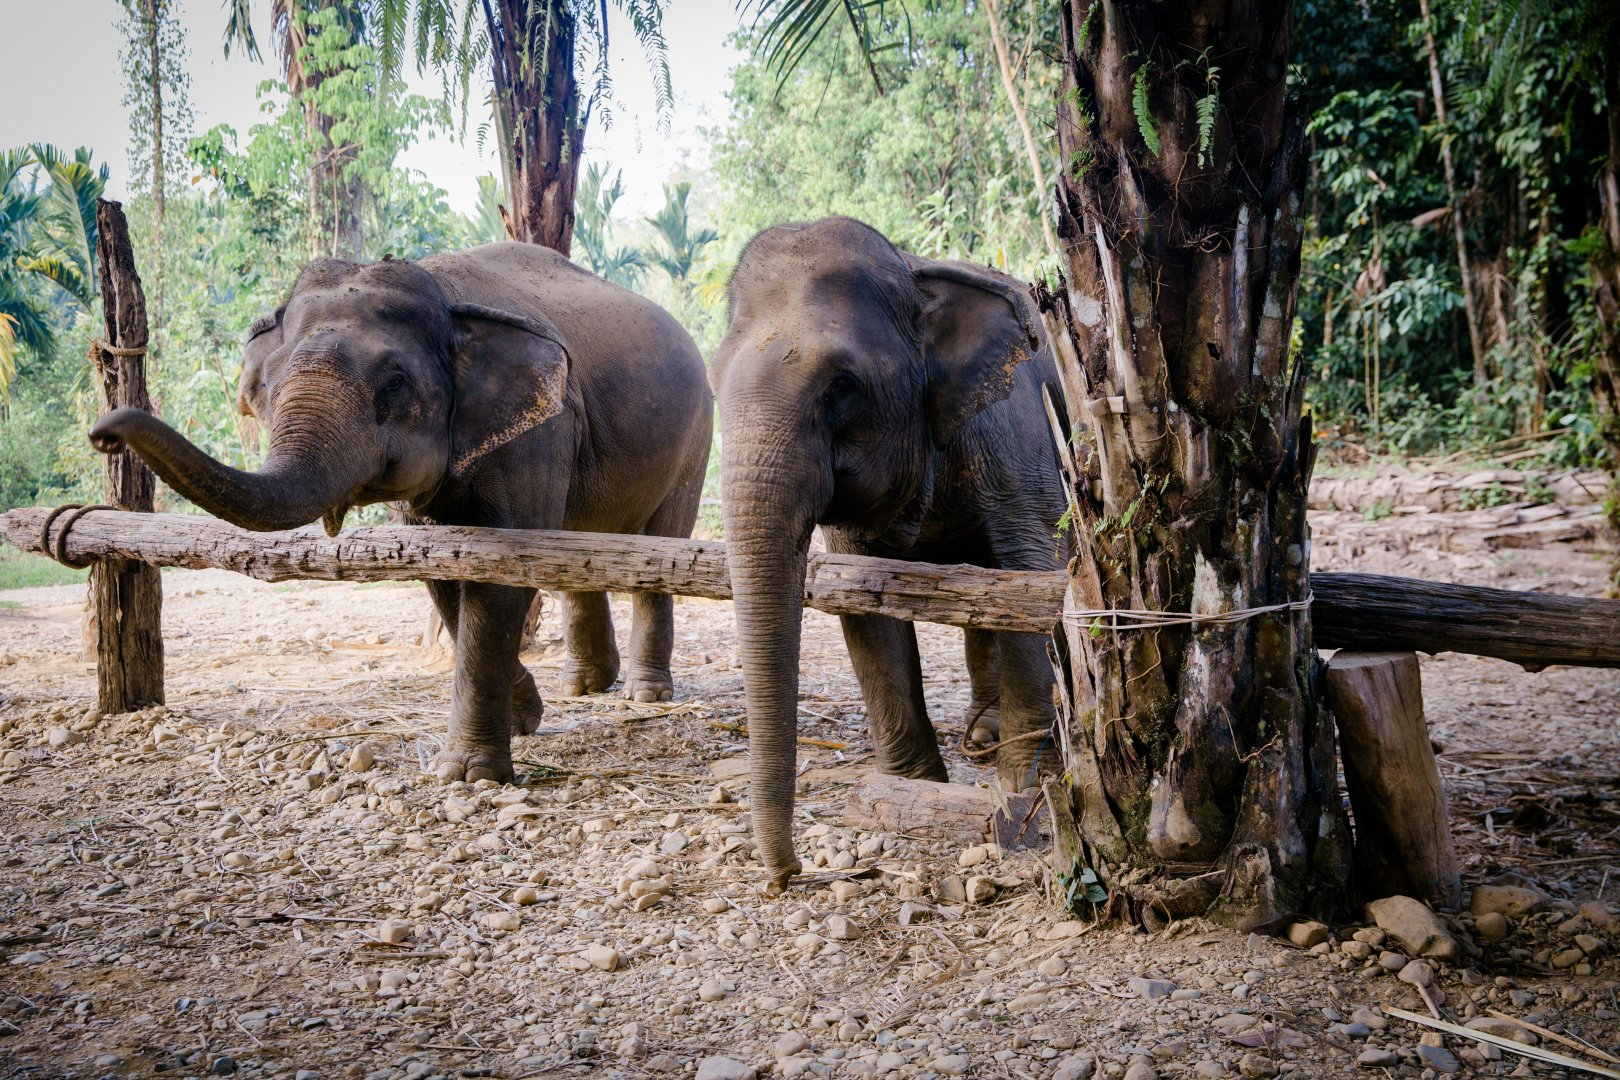 Elephants and Mammoths Terrestrial animal Indian elephant Wildlife Nature reserve Zoo African elephant Tusk Jungle Tree Snout Working animal National park Adaptation Forest Plant Trunk Woodland